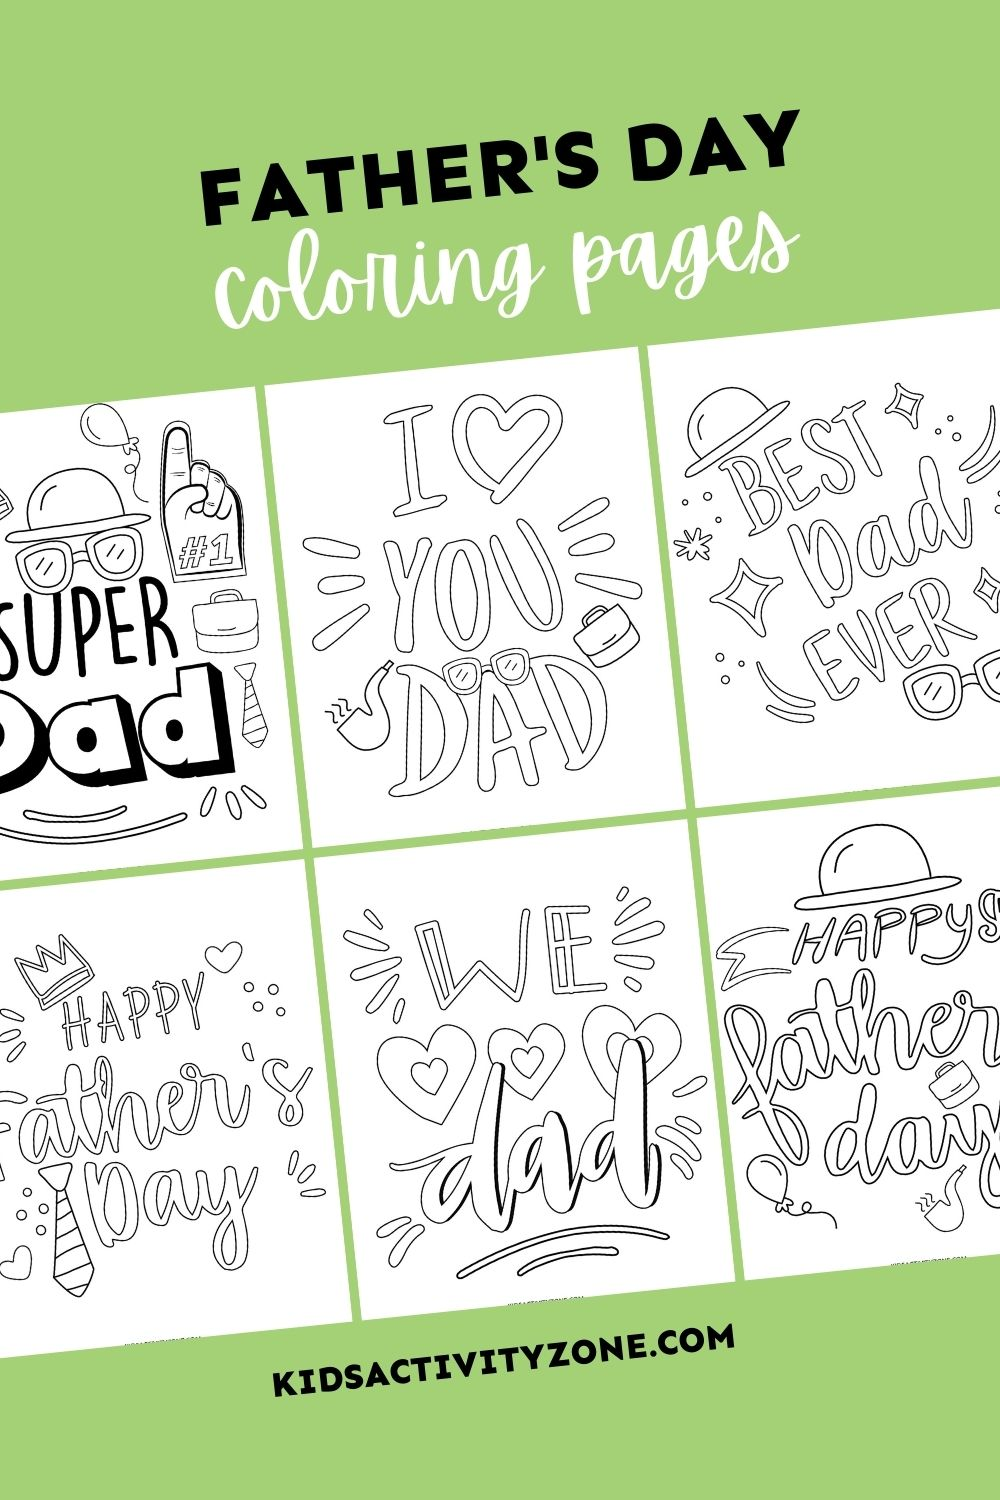 A boredom buster and Father's Day gift all in one! These fun, cute Father's Day Coloring Pages are perfect for kids to work on this summer. Not only do they keep them busy they turn into a gift for Dad on his special day that he will cherish.